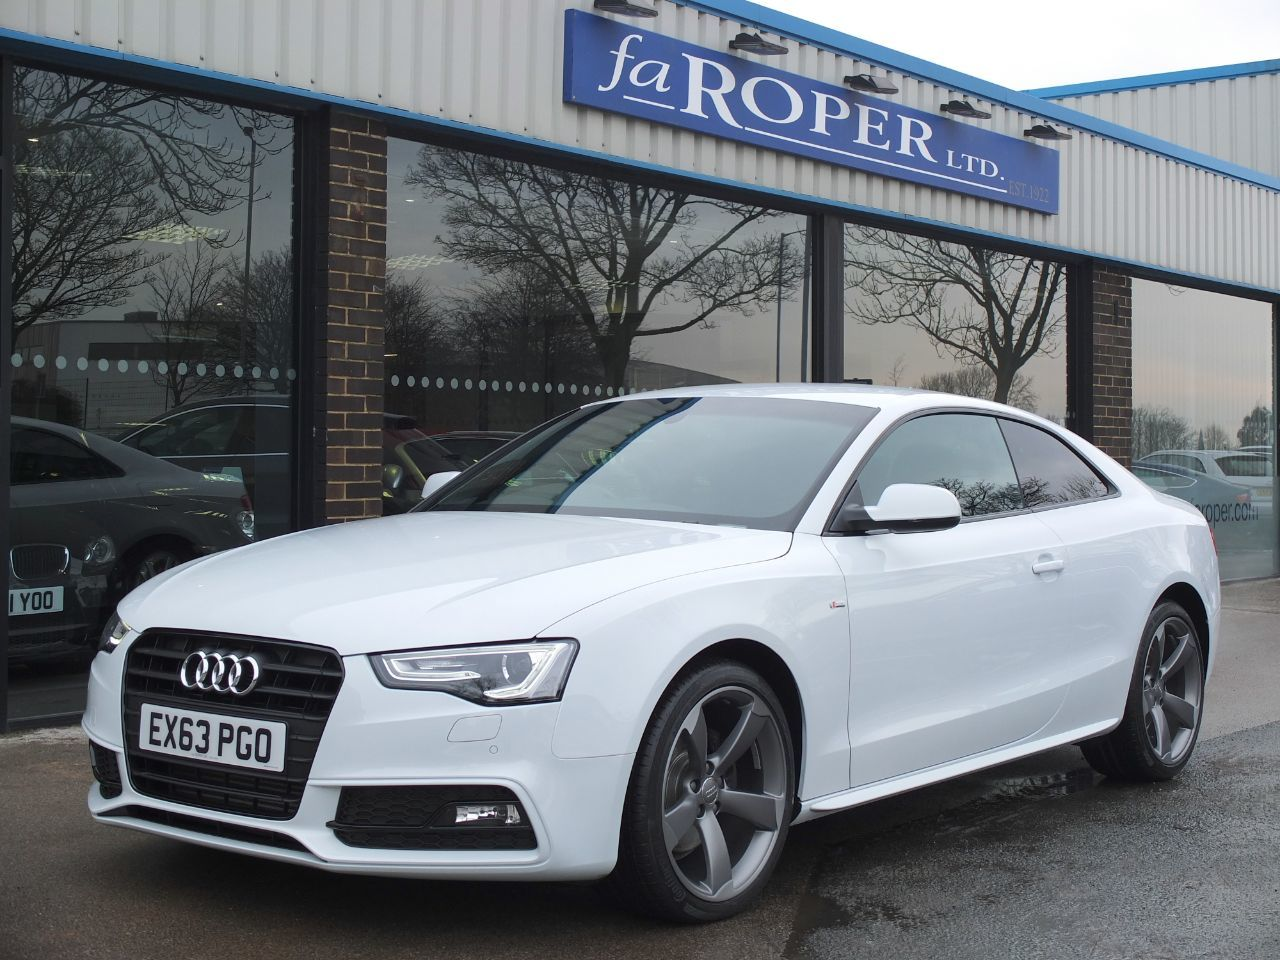 Audi A5 2.0 TDI 177 ps Black Edition Coupe Multitronic +++Spec Coupe Diesel Glacier White MetallicAudi A5 2.0 TDI 177 ps Black Edition Coupe Multitronic +++Spec Coupe Diesel Glacier White Metallic at fa Roper Ltd Bradford